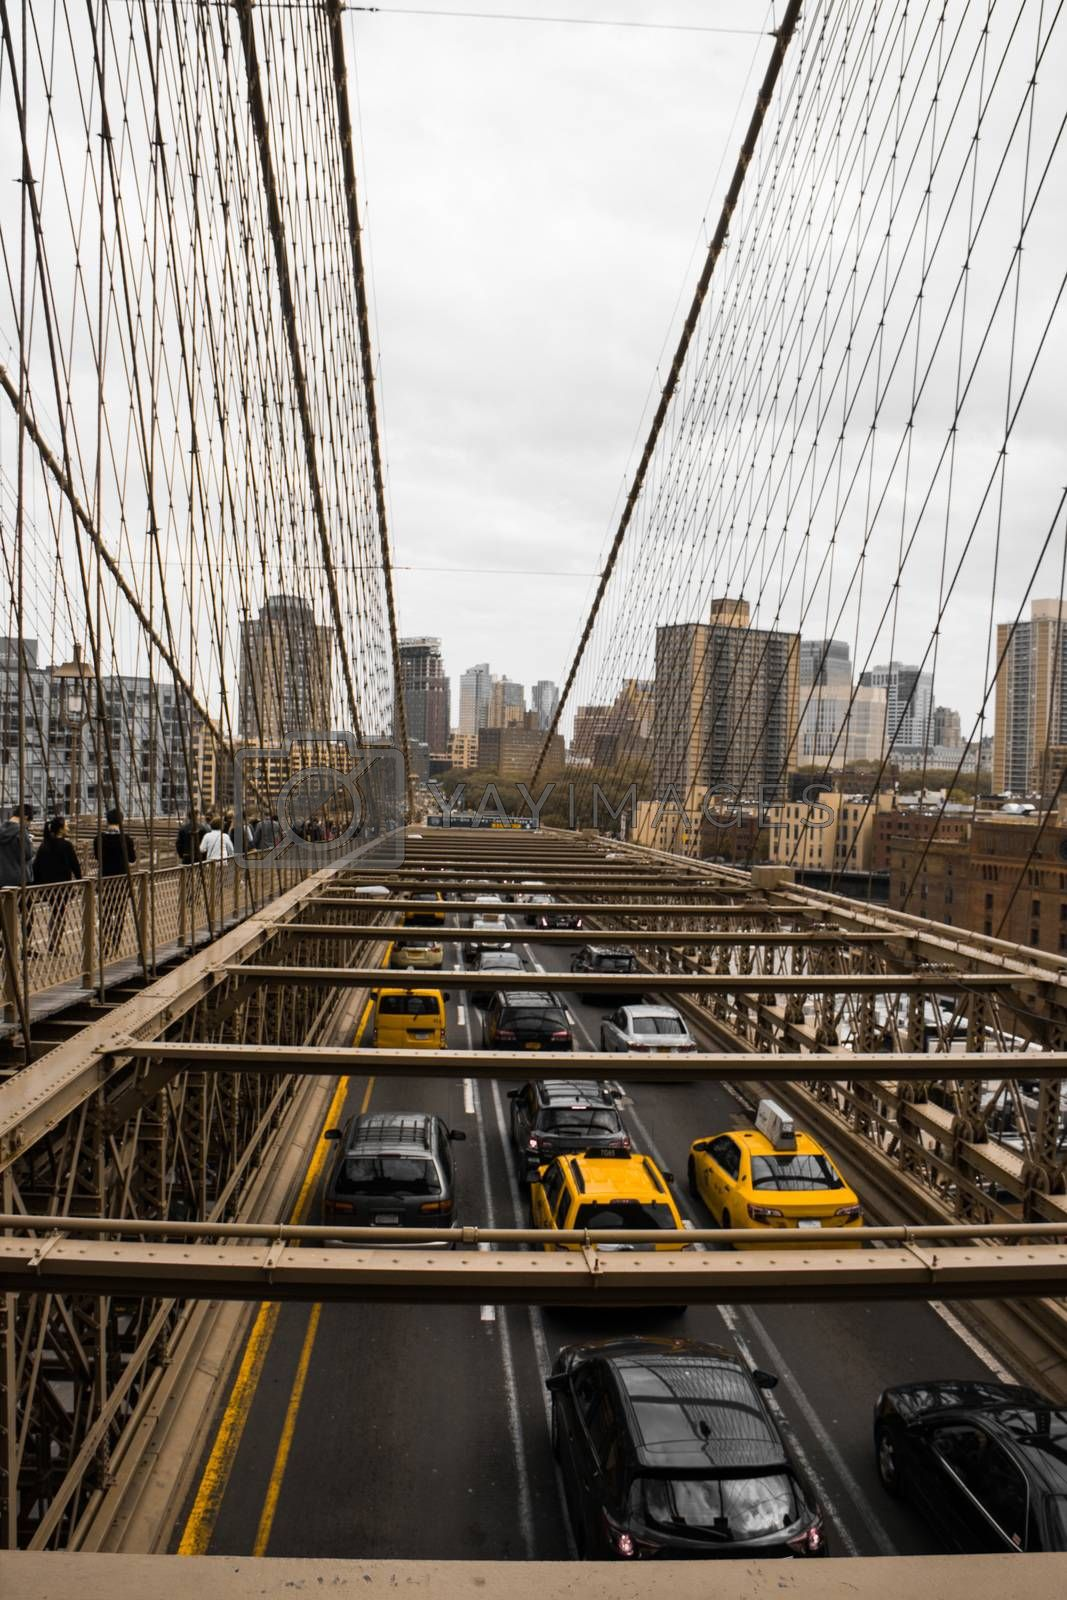 Taxis and cars driving across the brooklyn bridge in new york city during rush hour